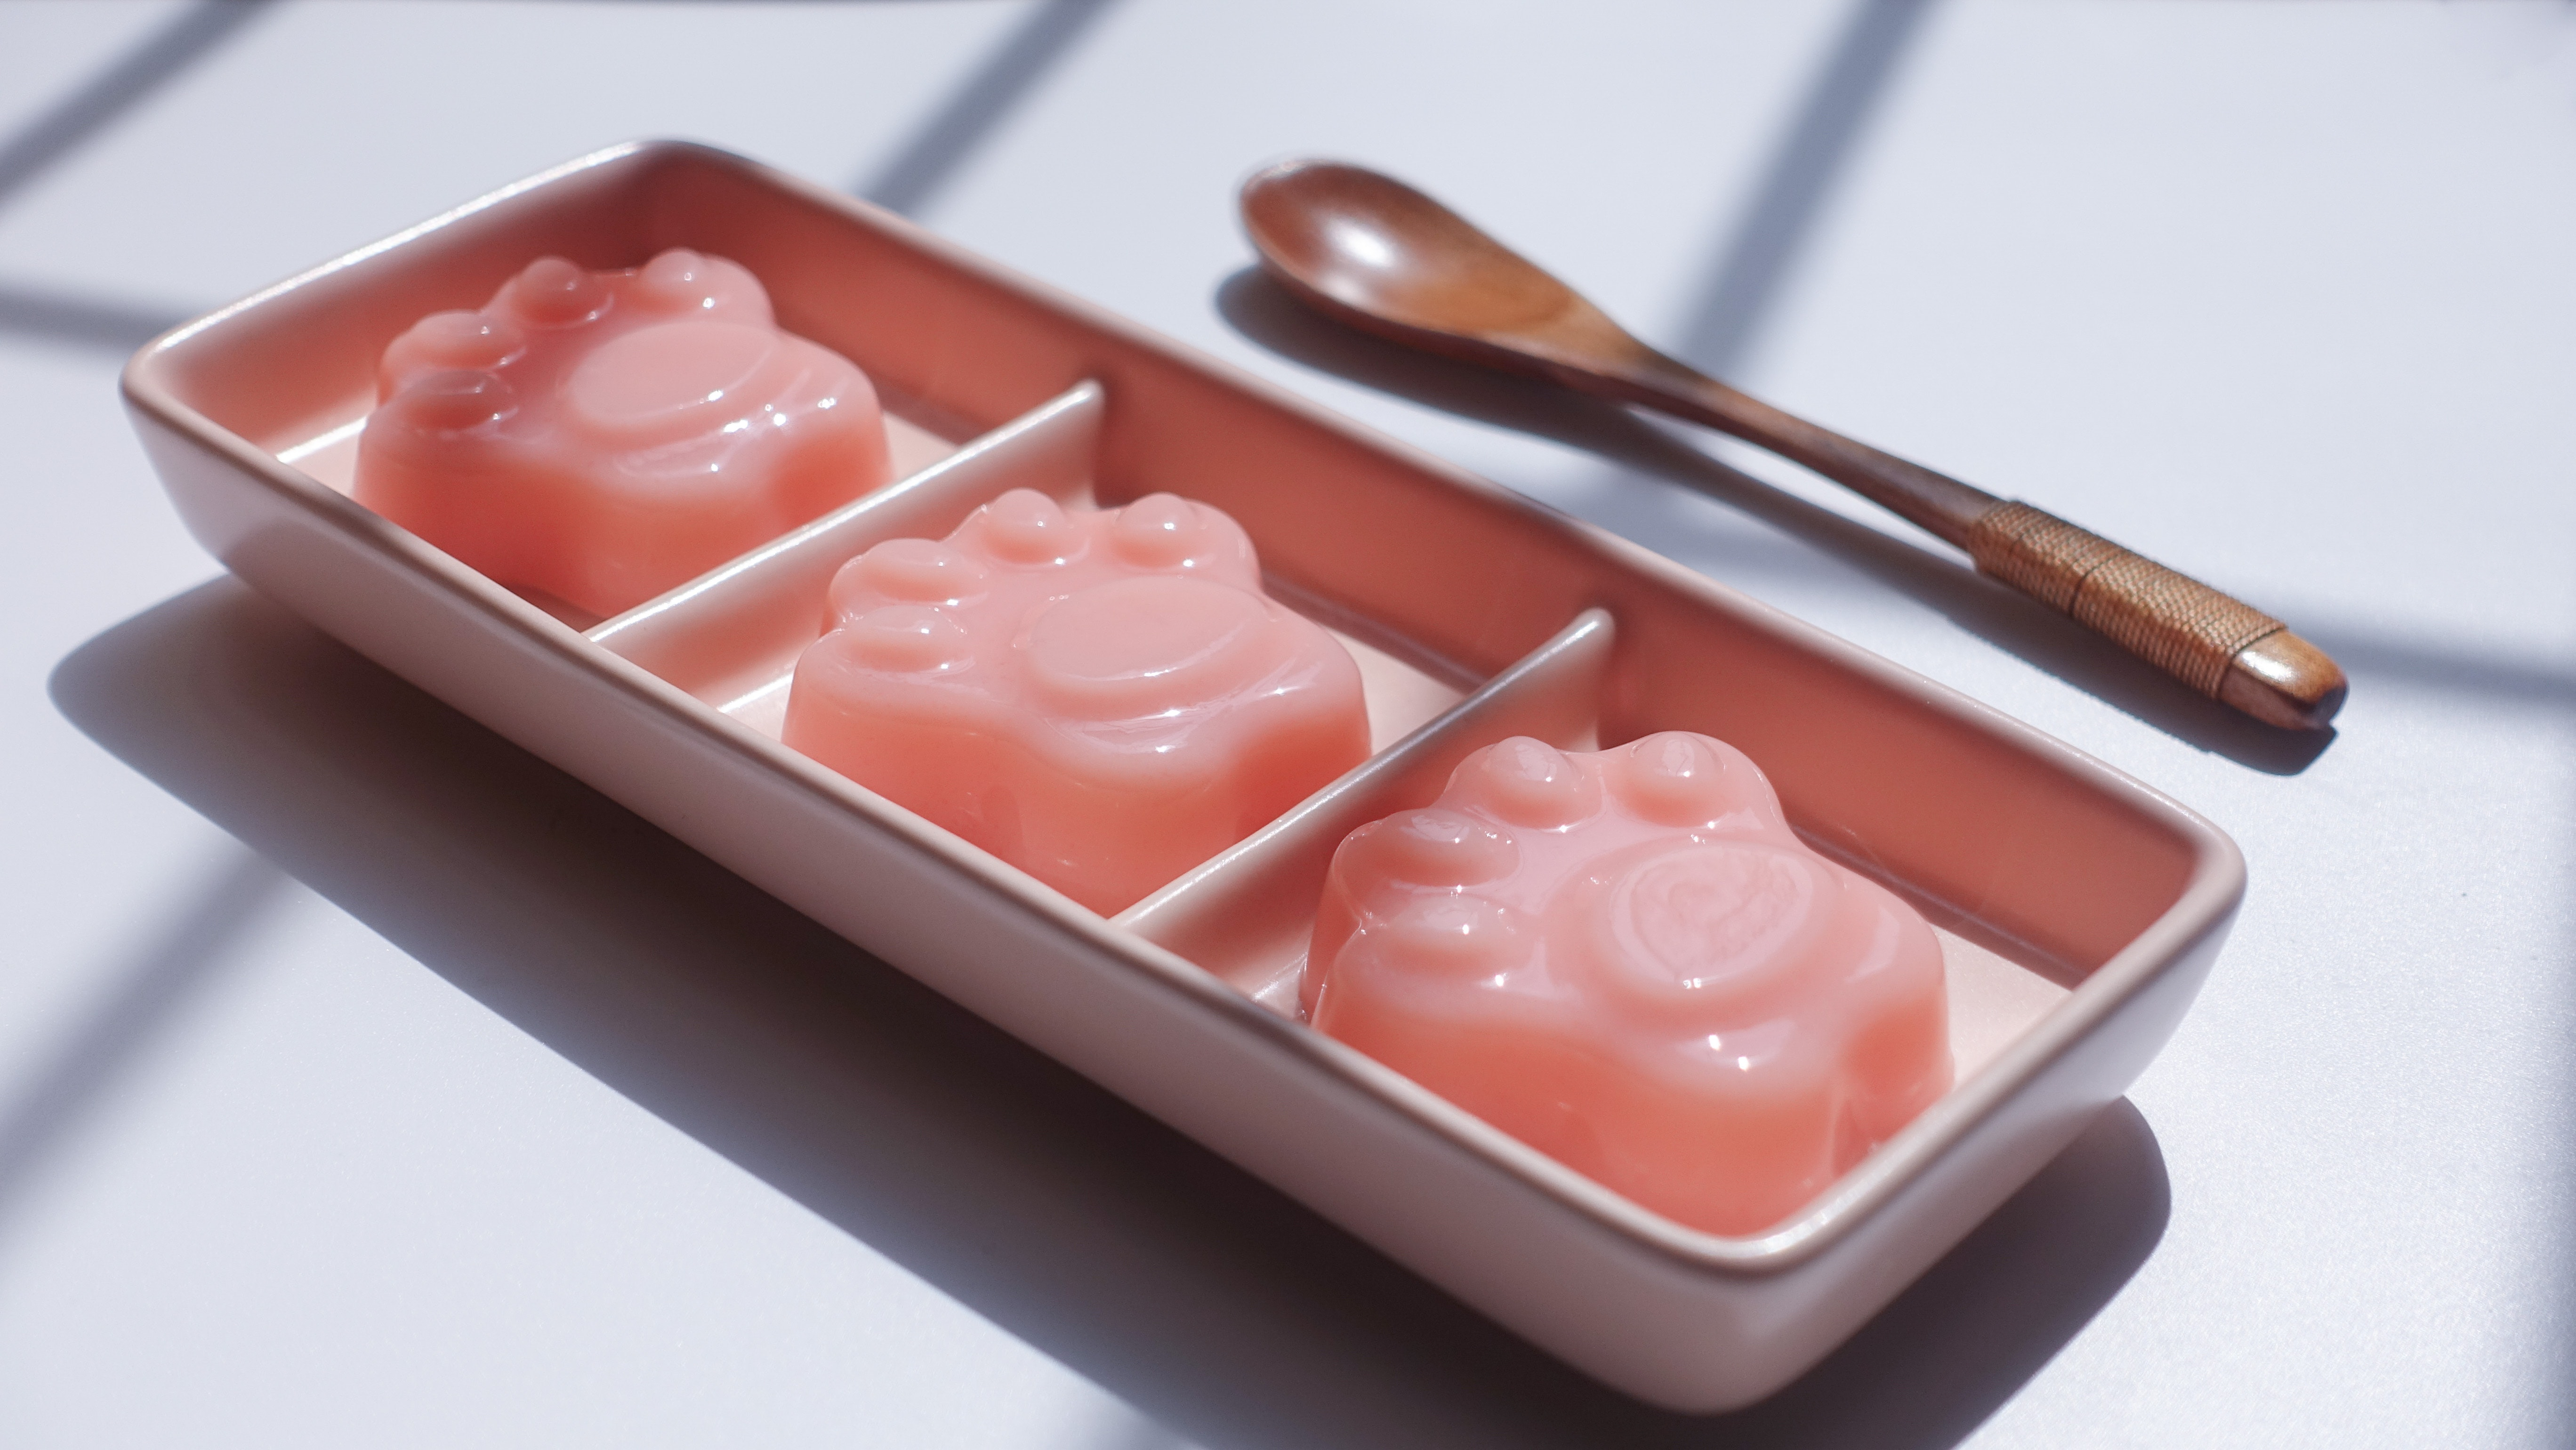 Paw Shape Jell-o on Pink Ceramic Container Near Brown Wooden Tablespoon, Close -up, Colors, Delicious, Food, HQ Photo